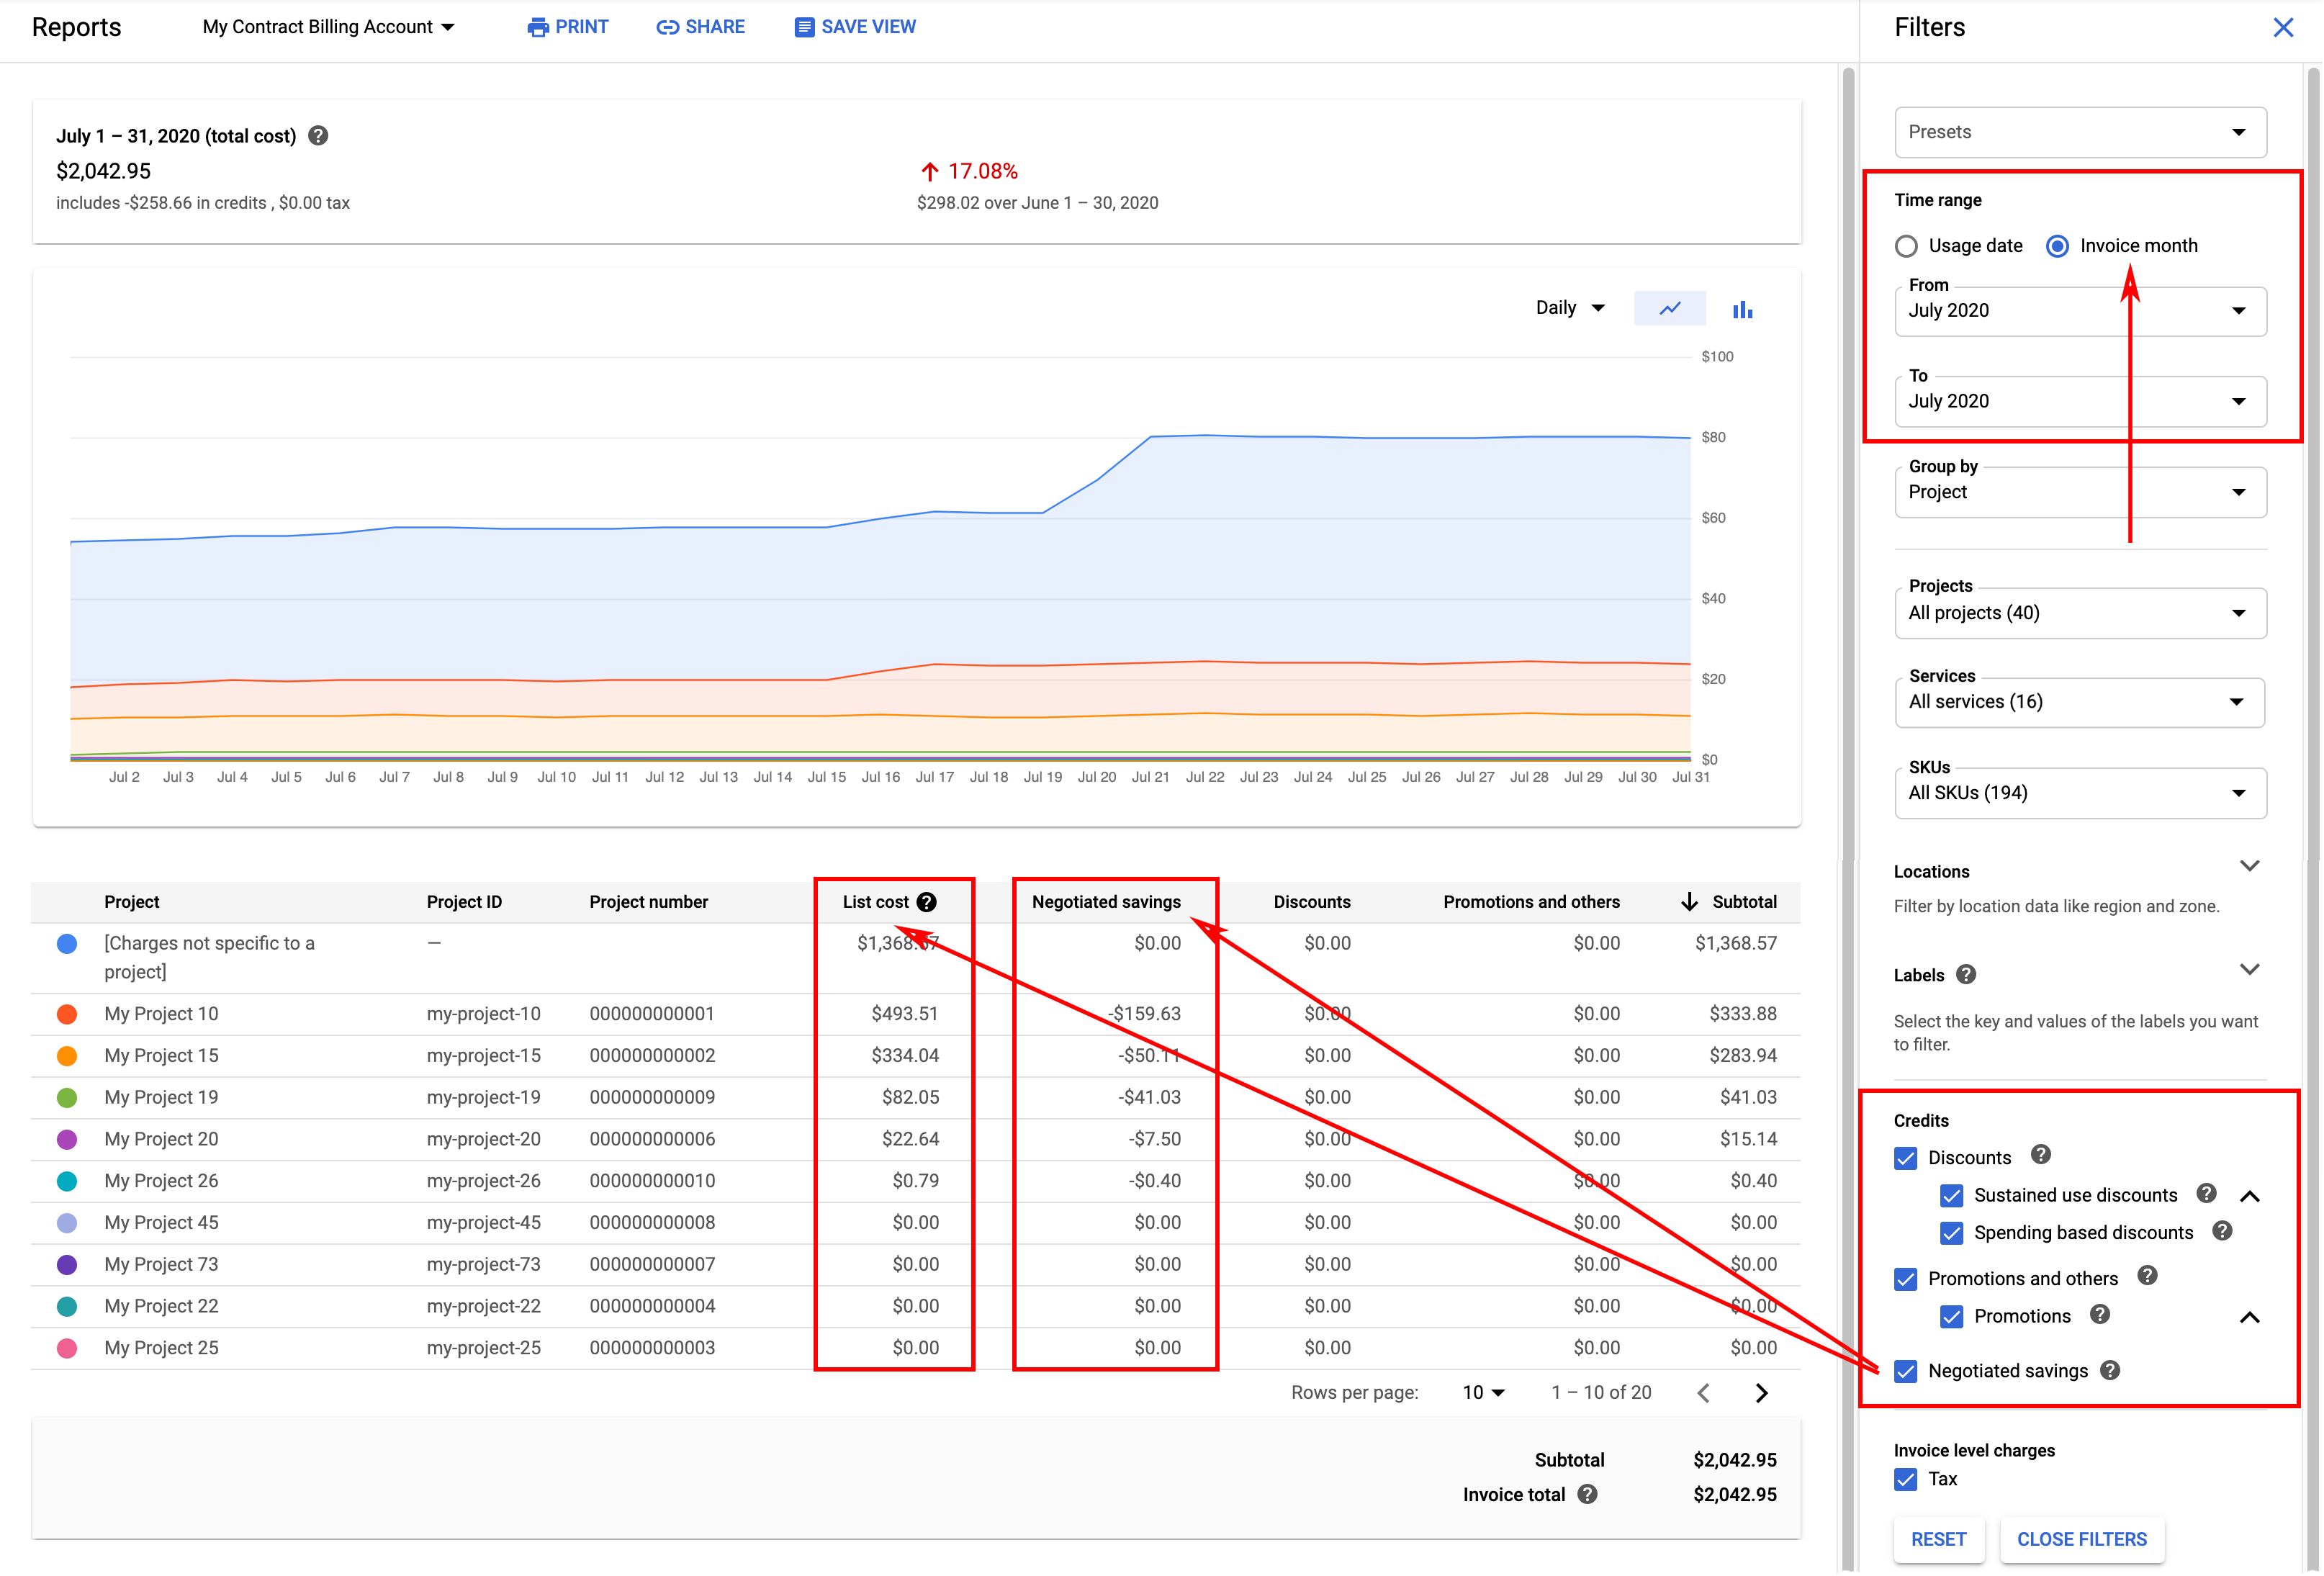 Example of a billing report for a Cloud Billing account that is associated with a negotiated pricing contract, showing Negotiated savings as a credit column, separate from the List cost column that displays base usage cost calculated using list prices.